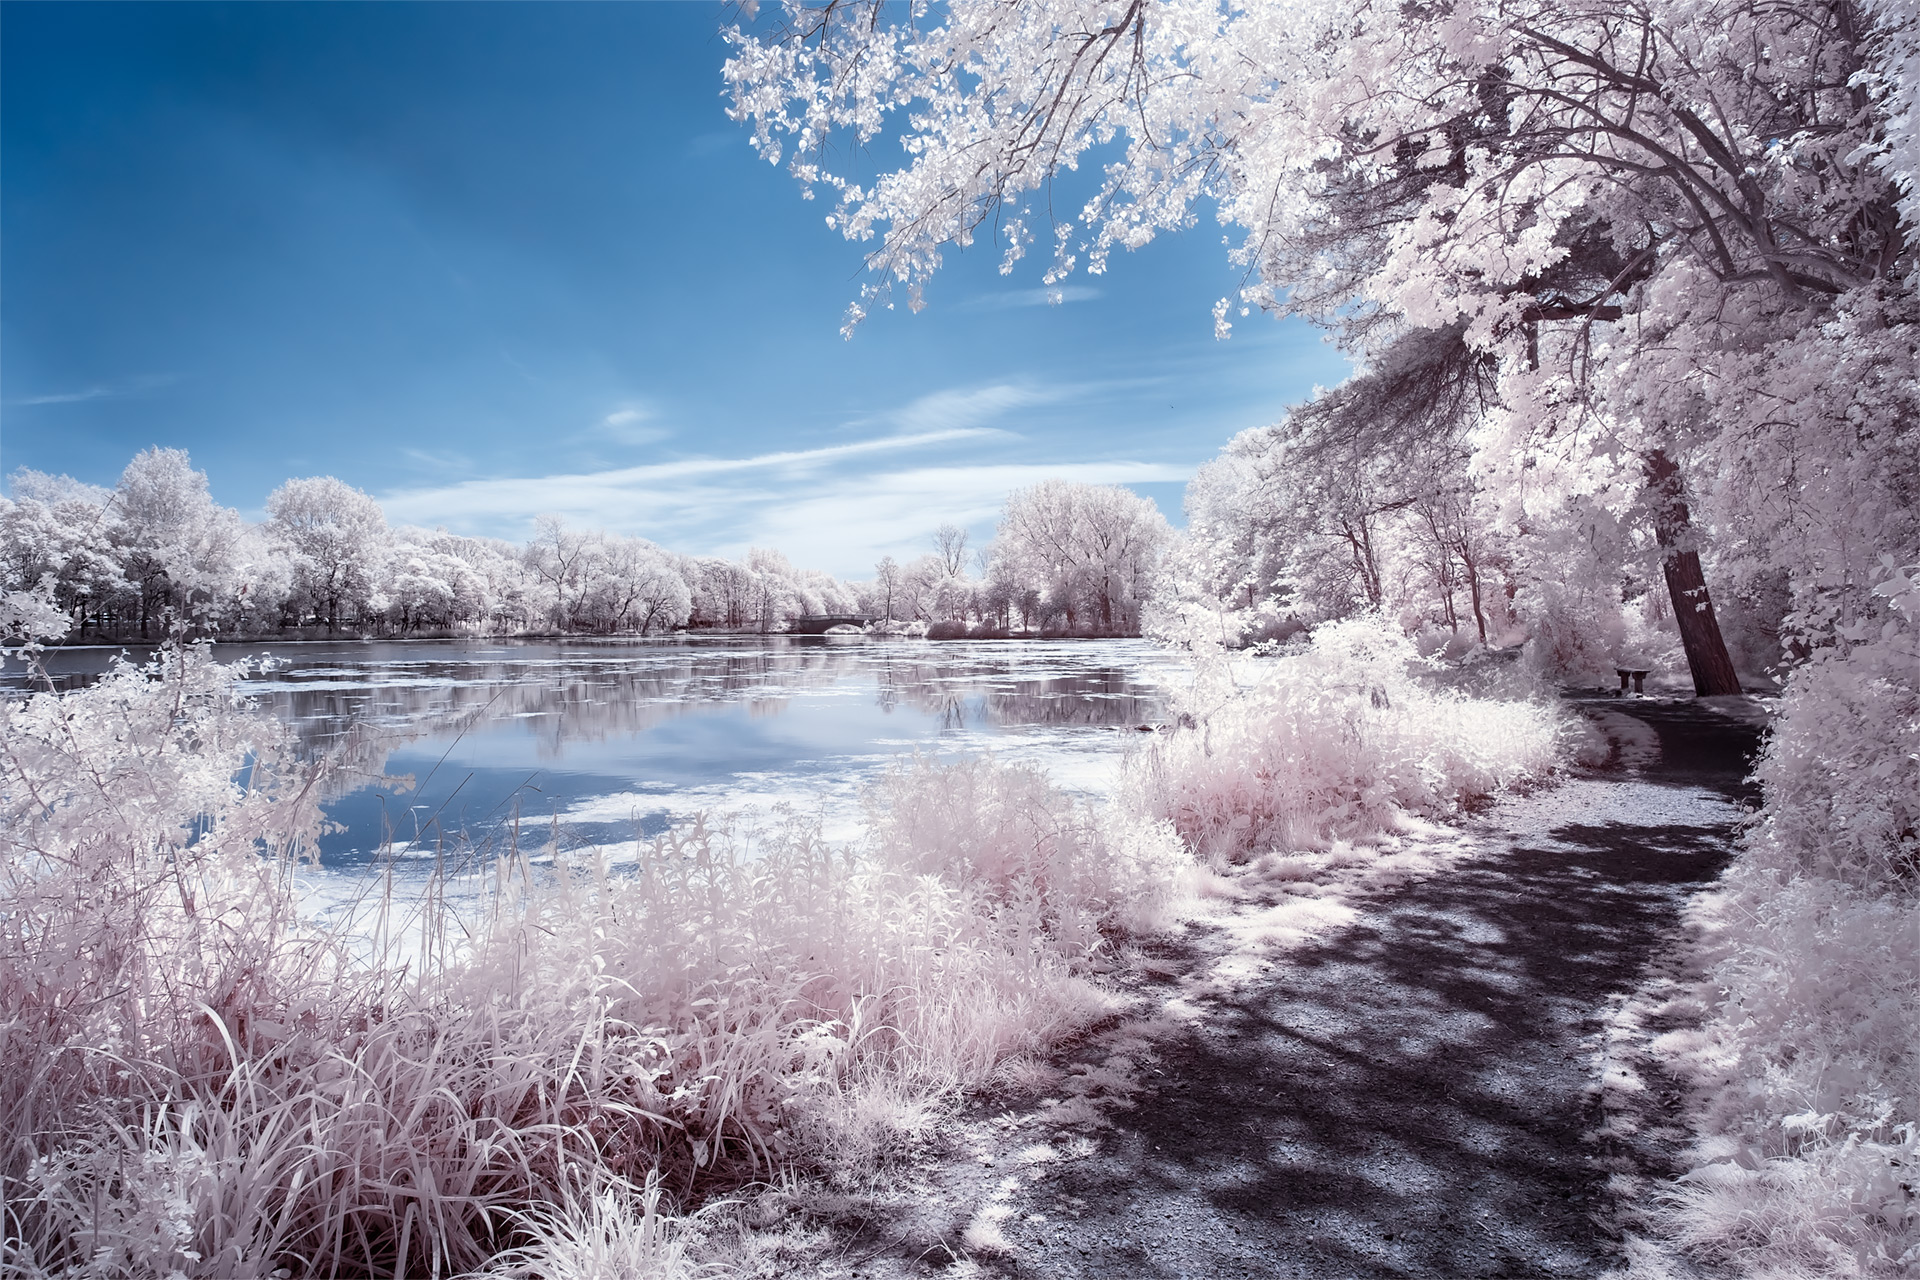 Stanley Park, May 2019 (IR) / Stanley Park, Show the Original, Landscape Photography, Infrared, Fujinon XF 14mm f/2.8, Fujifilm X-E2, Blackpool [stanley park may 2019 f]